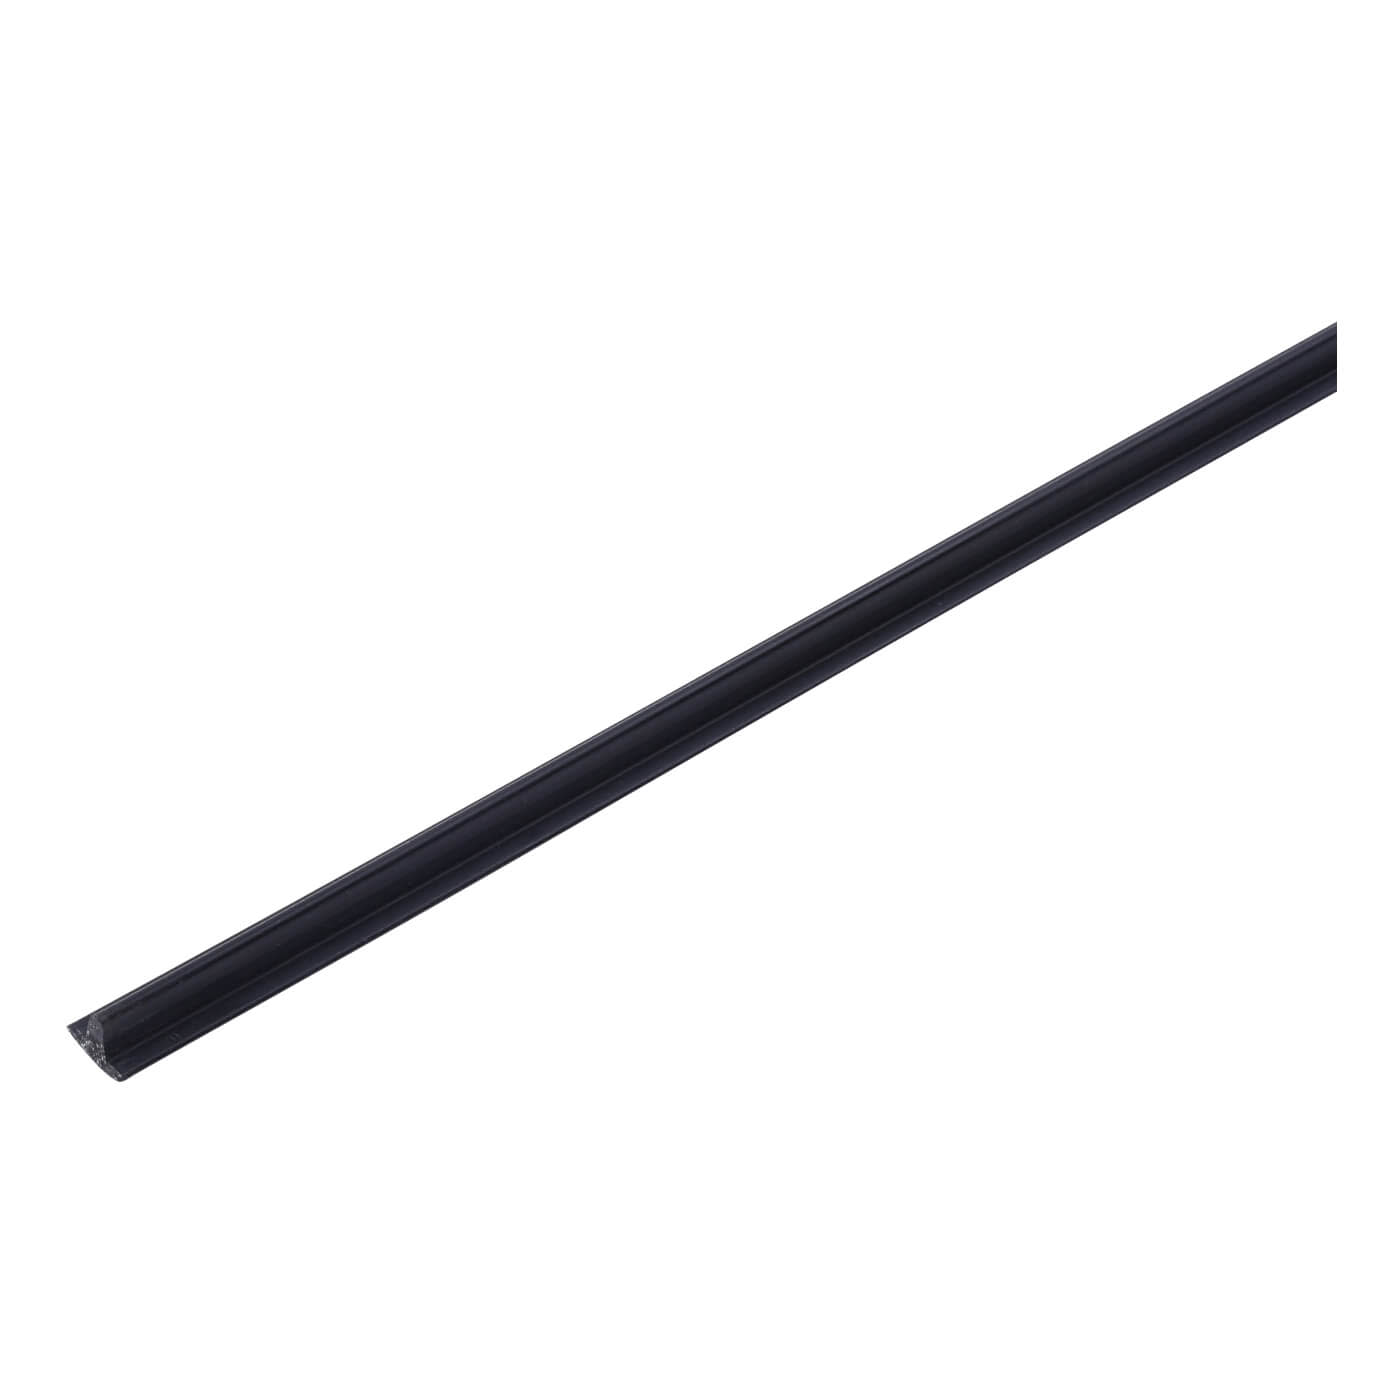 Chasmood No 3 Track 2 metres - Overall Height 6.3mm - Overall Width 11.1mm)